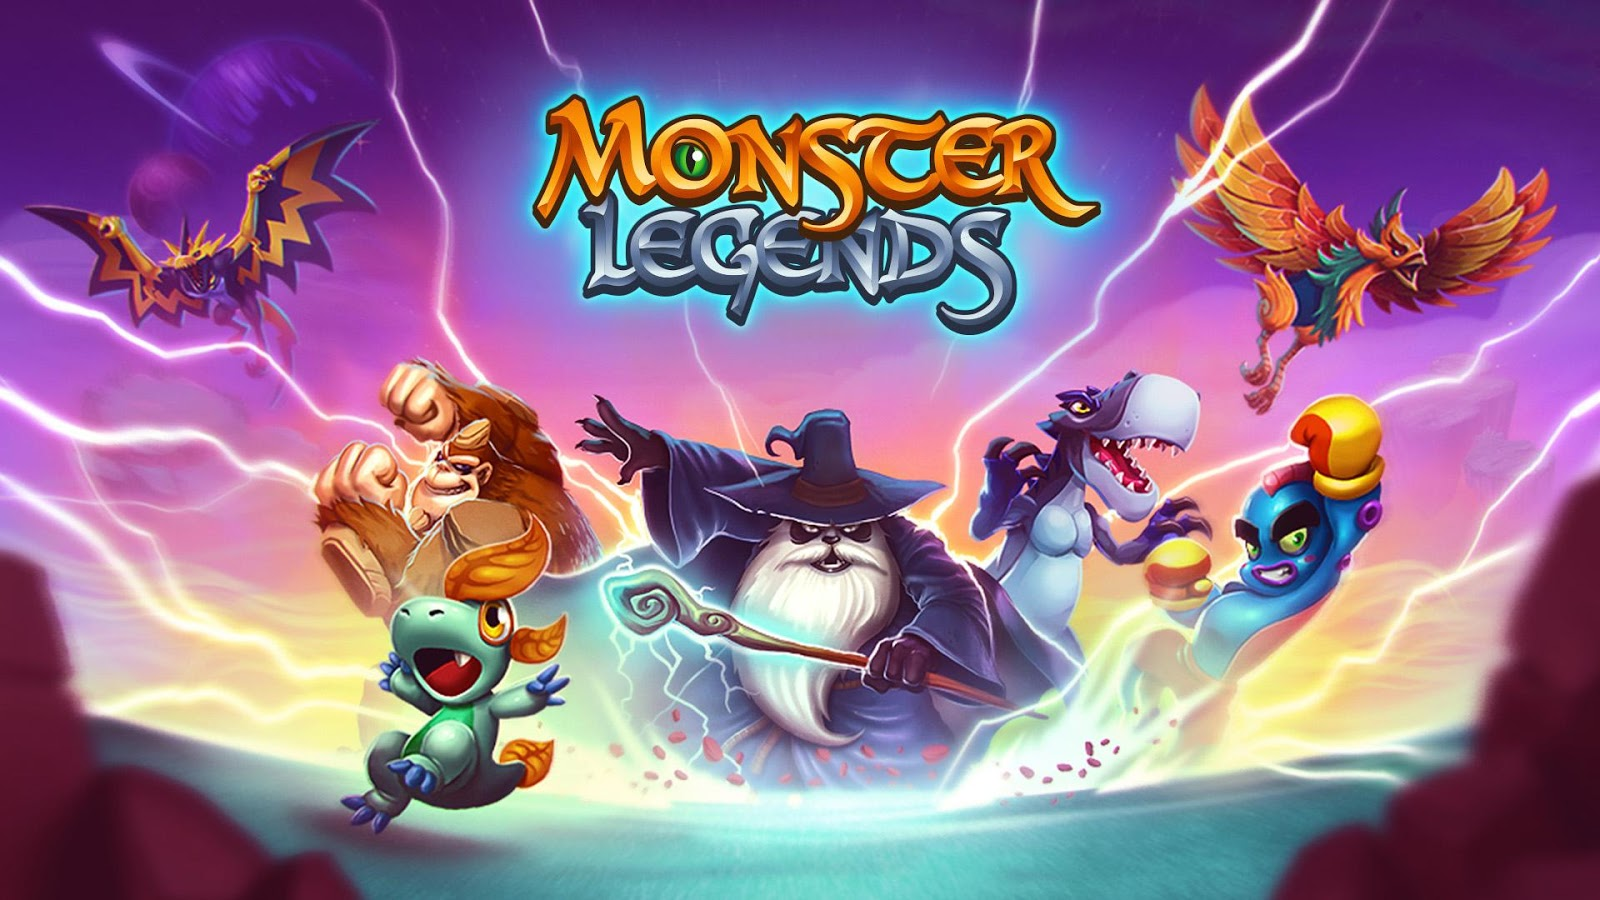 Monster Legends Wallpapers Wallpapersafari